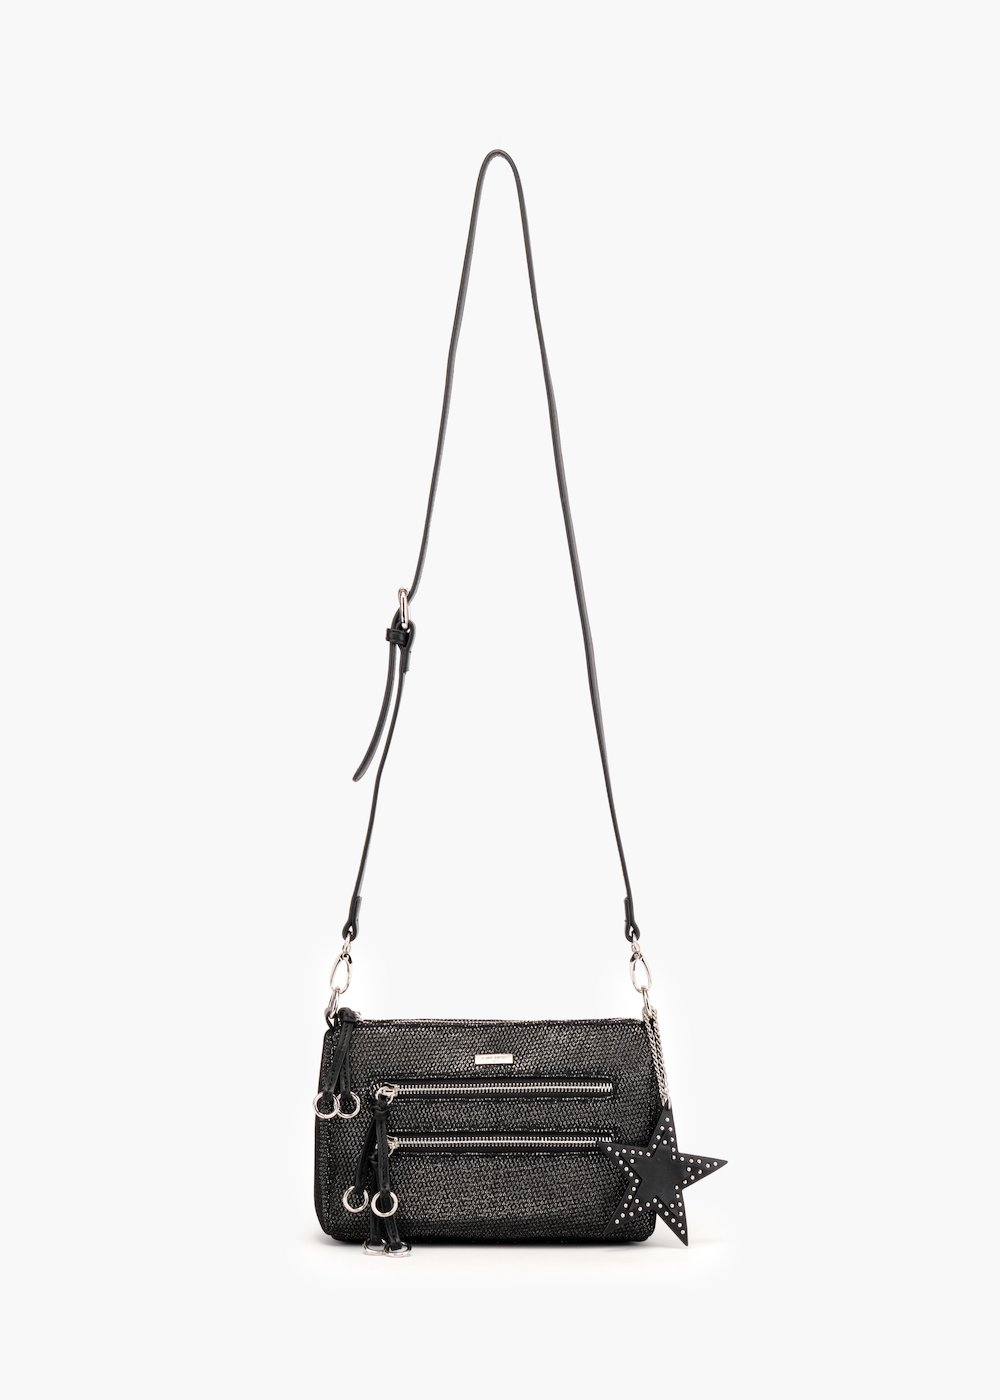 Bily pochette with shoulder strap in glitter fabric - Black / Silver - Woman